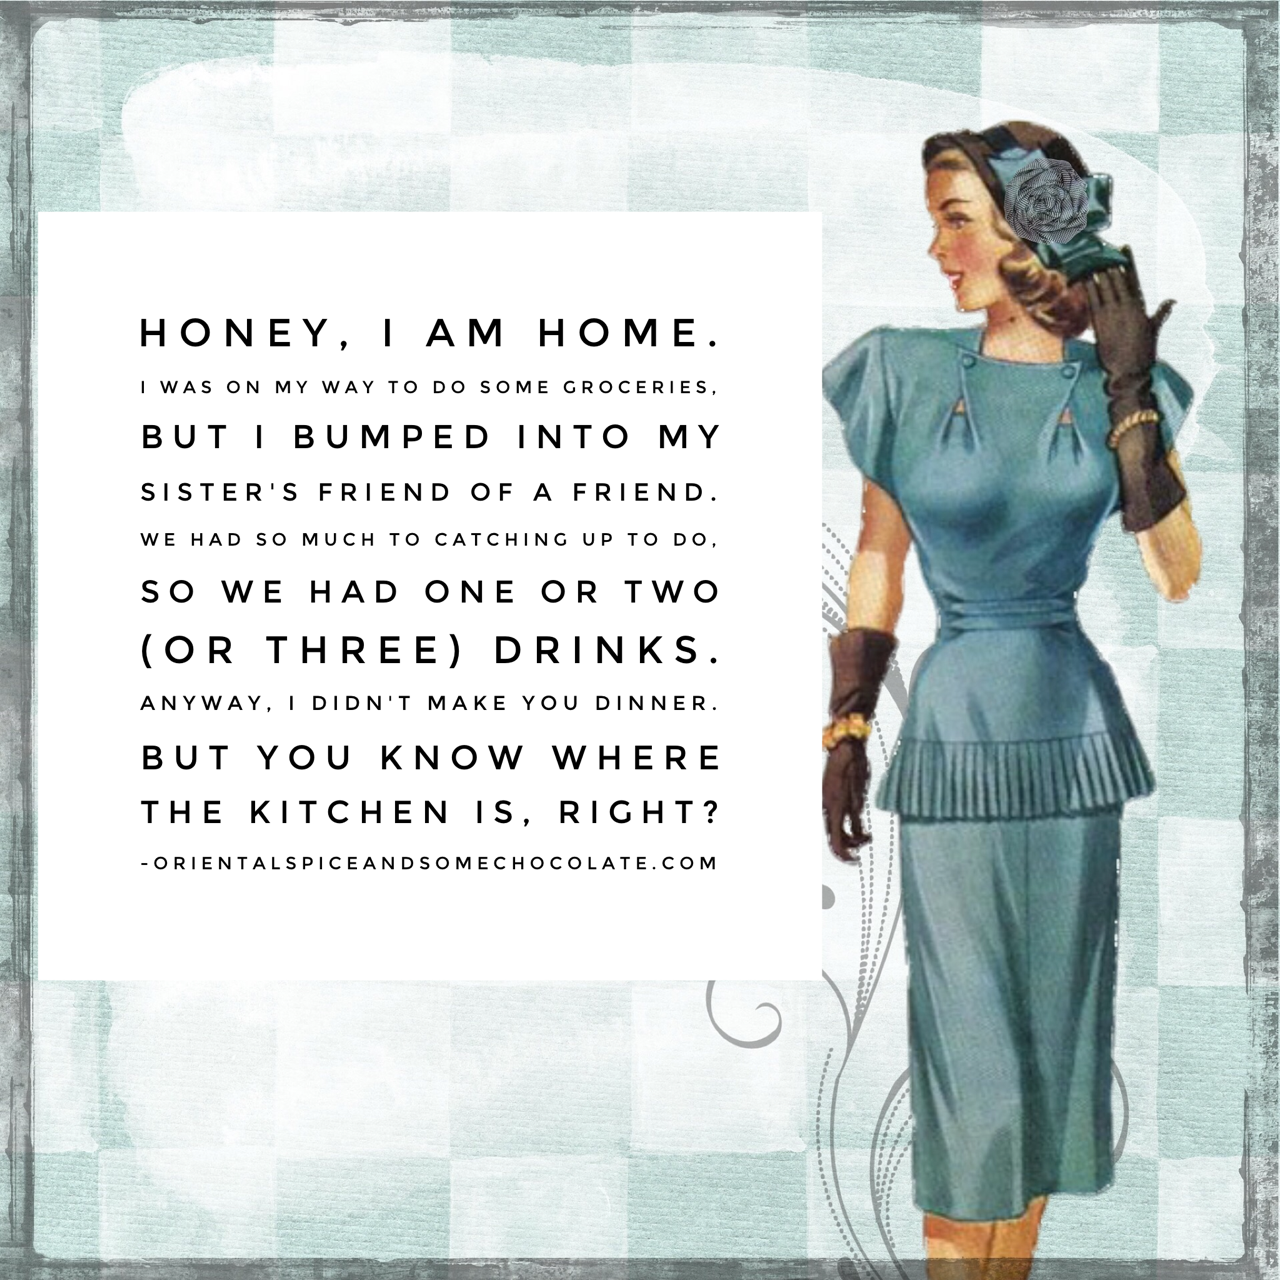 10-witty-conversation-starters-for-a-good-1950s-housewife-honey-i-am-home